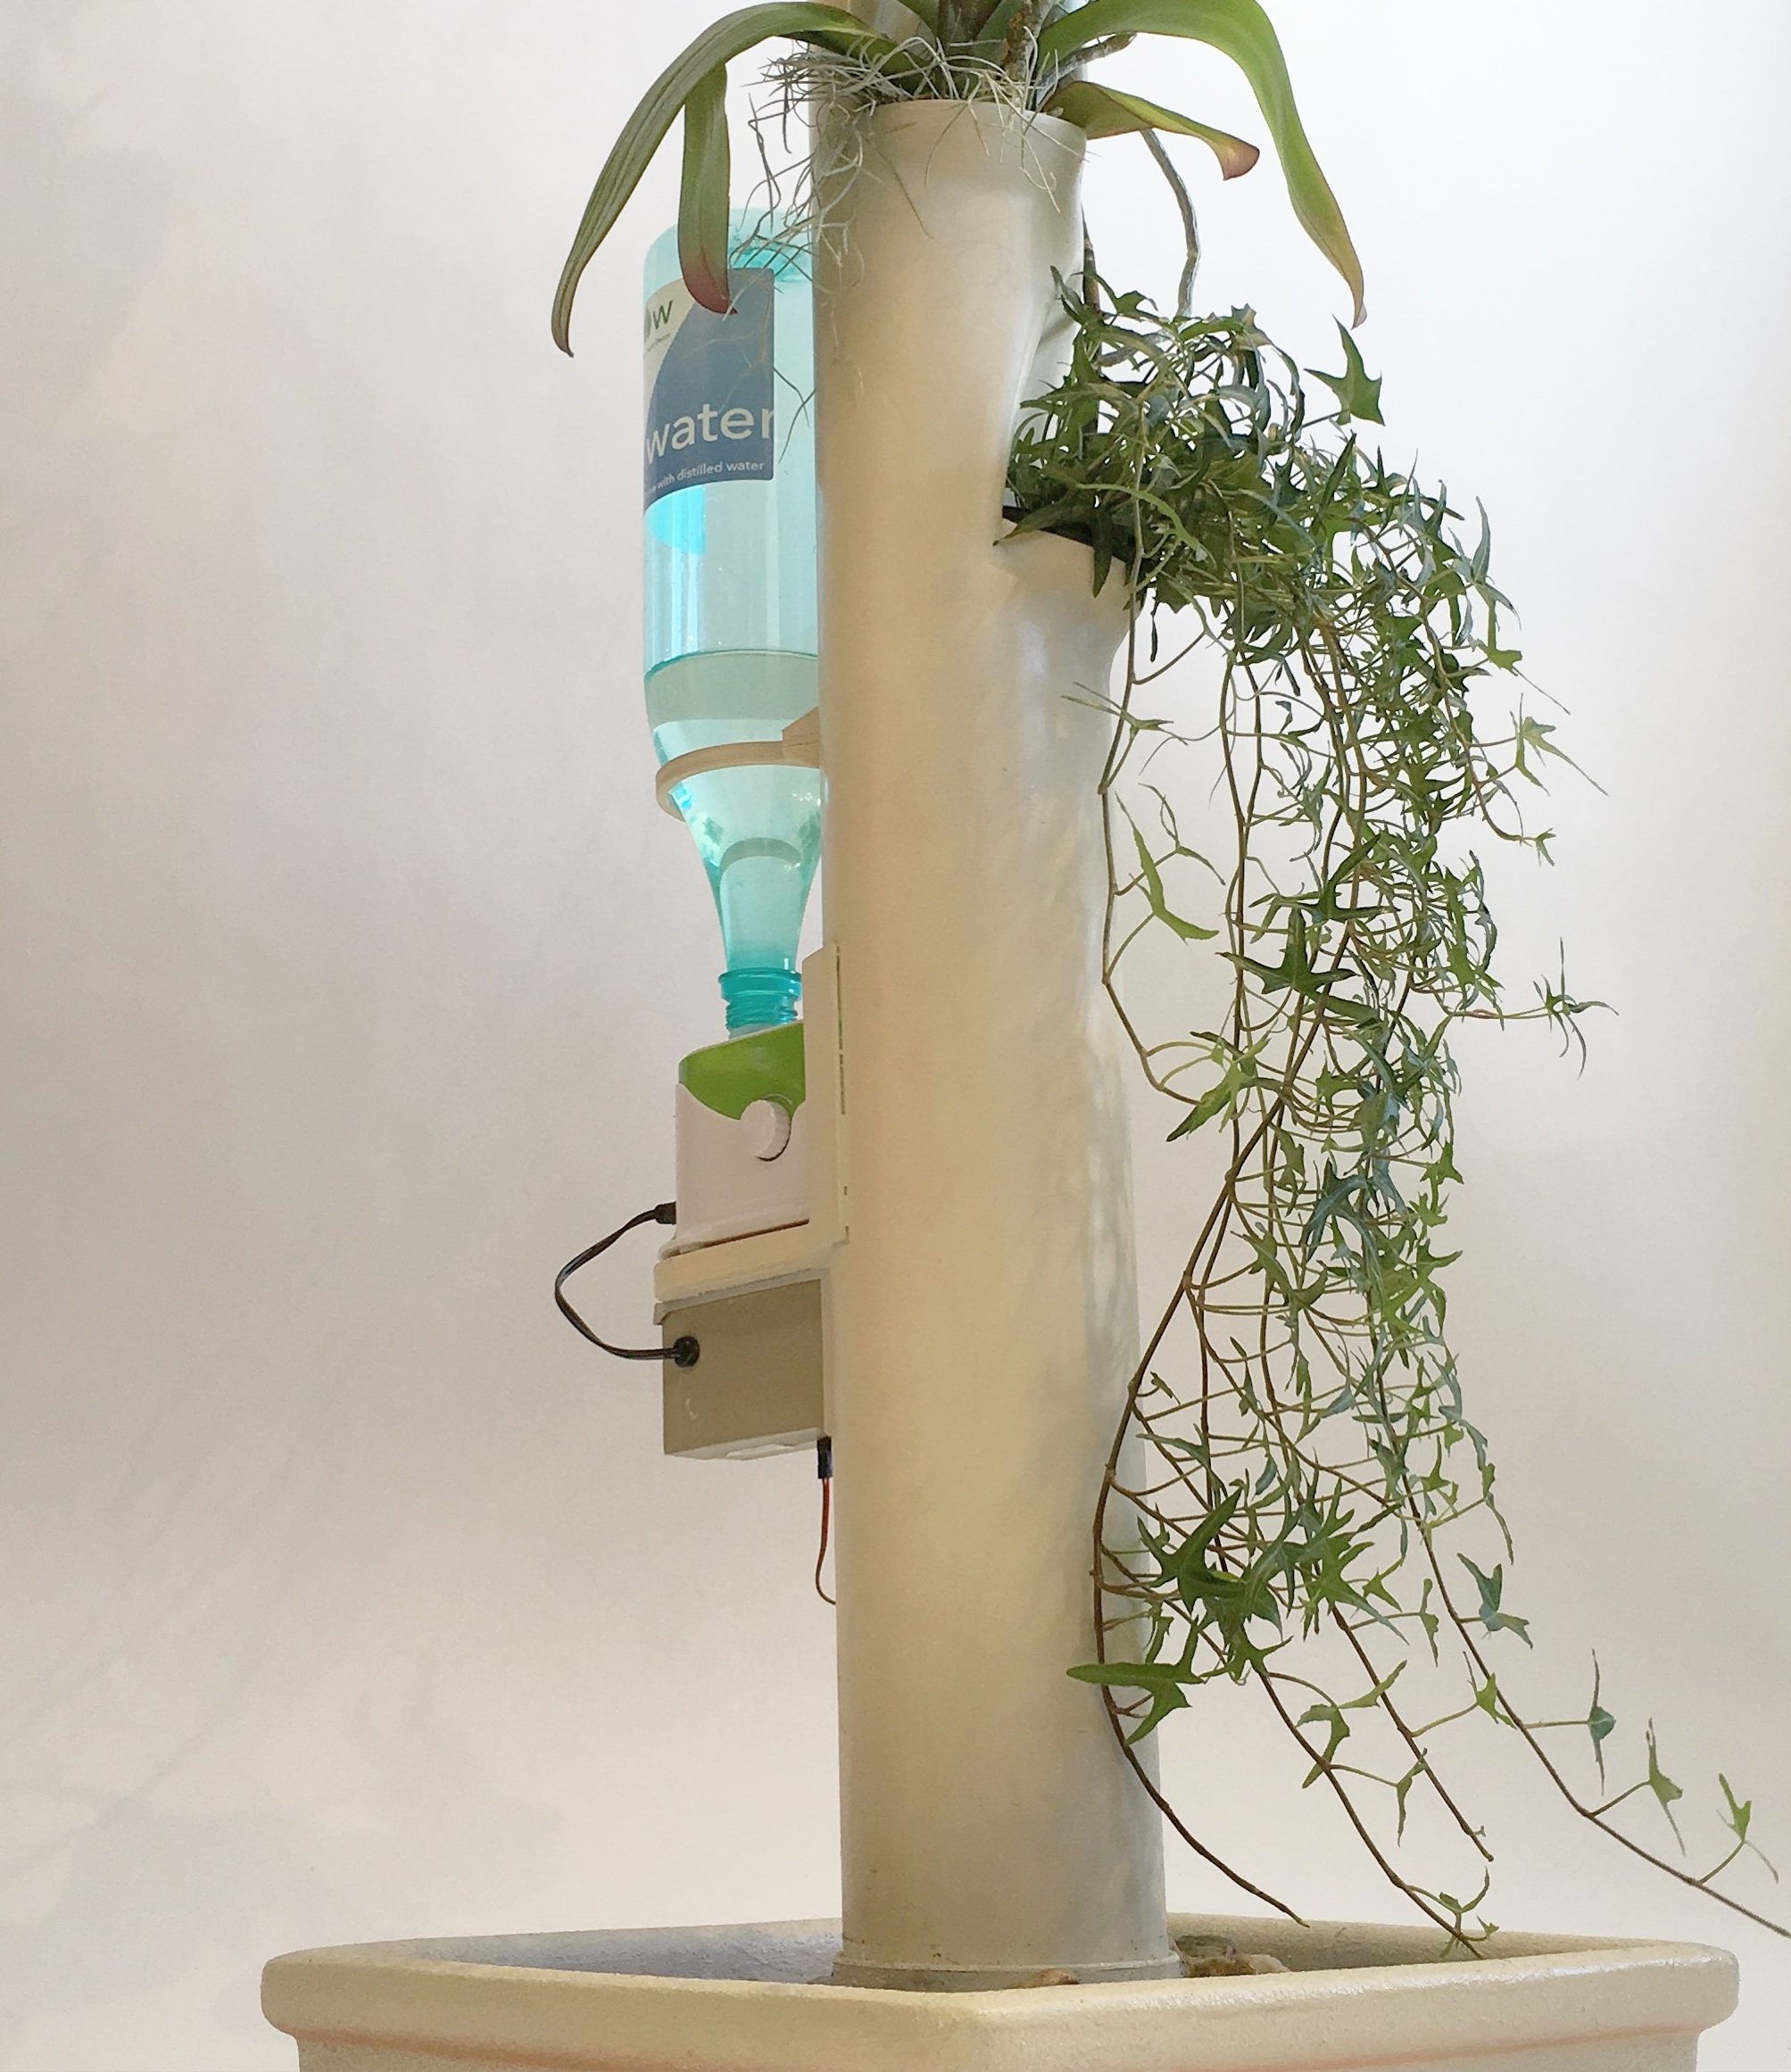 Aergrow post and water bottle